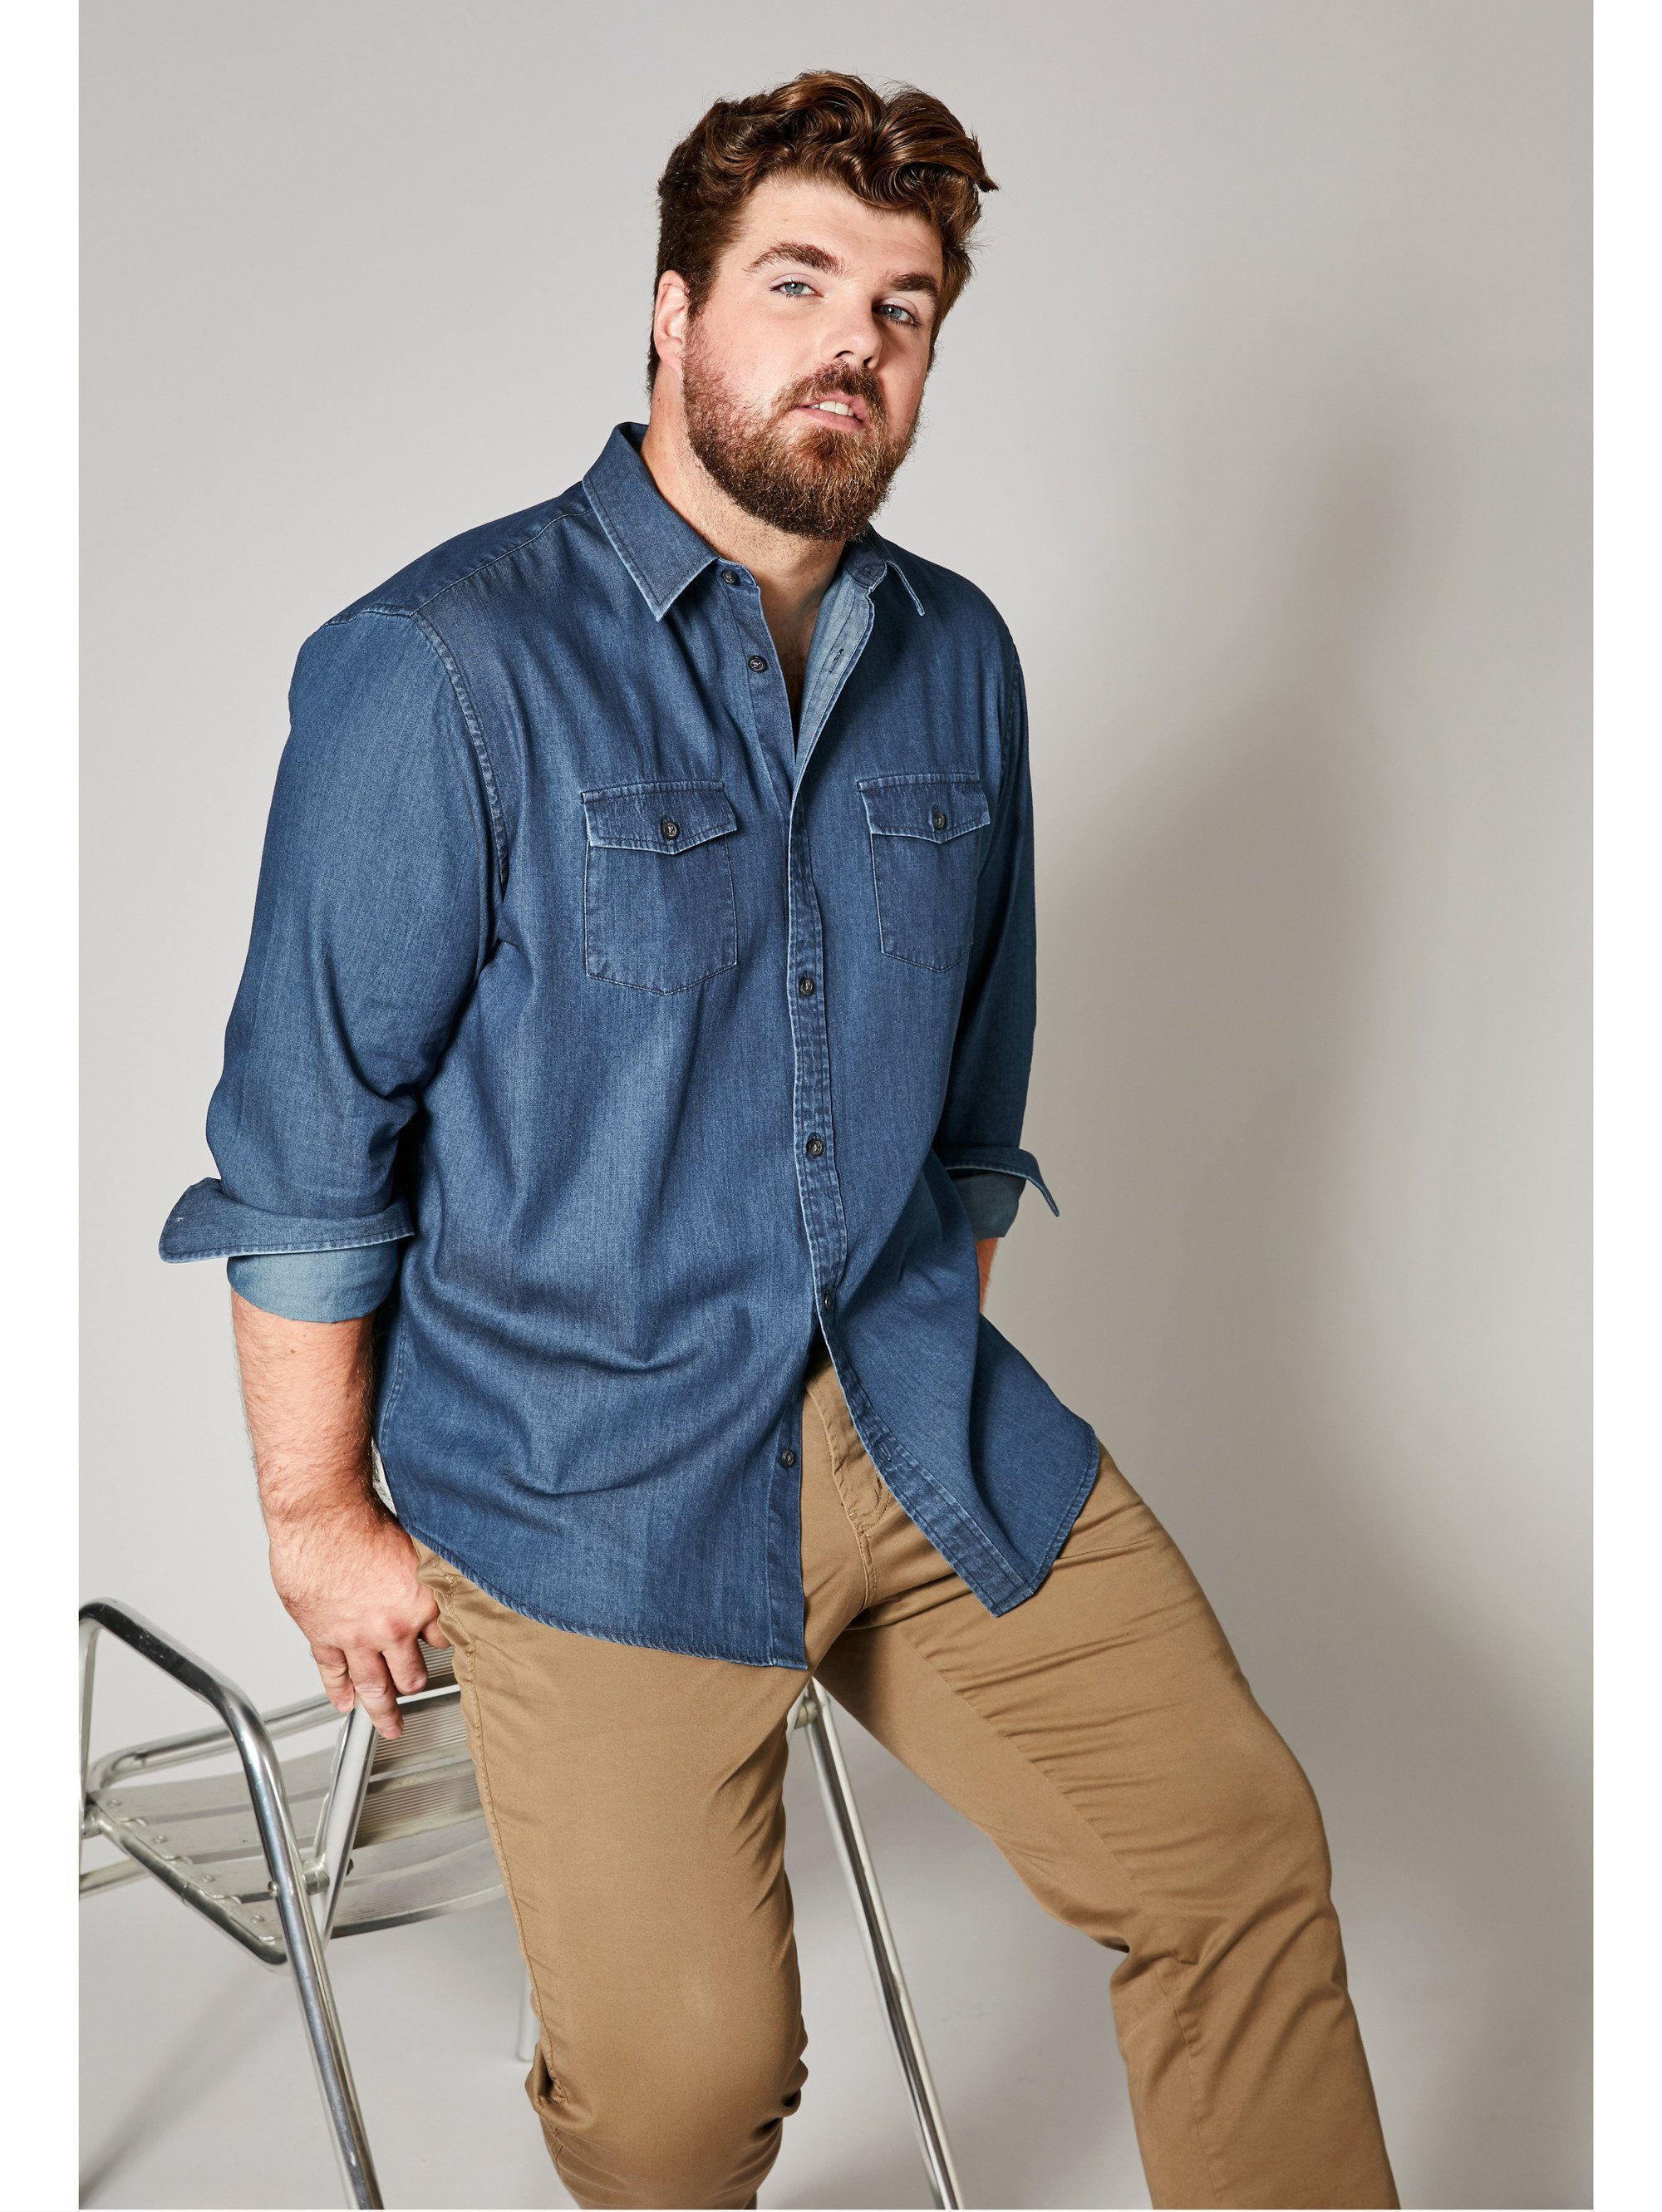 Men Plus by Happy Size Jeanshemd | Bekleidung > Hemden > Jeanshemden | Men Plus By Happy Size